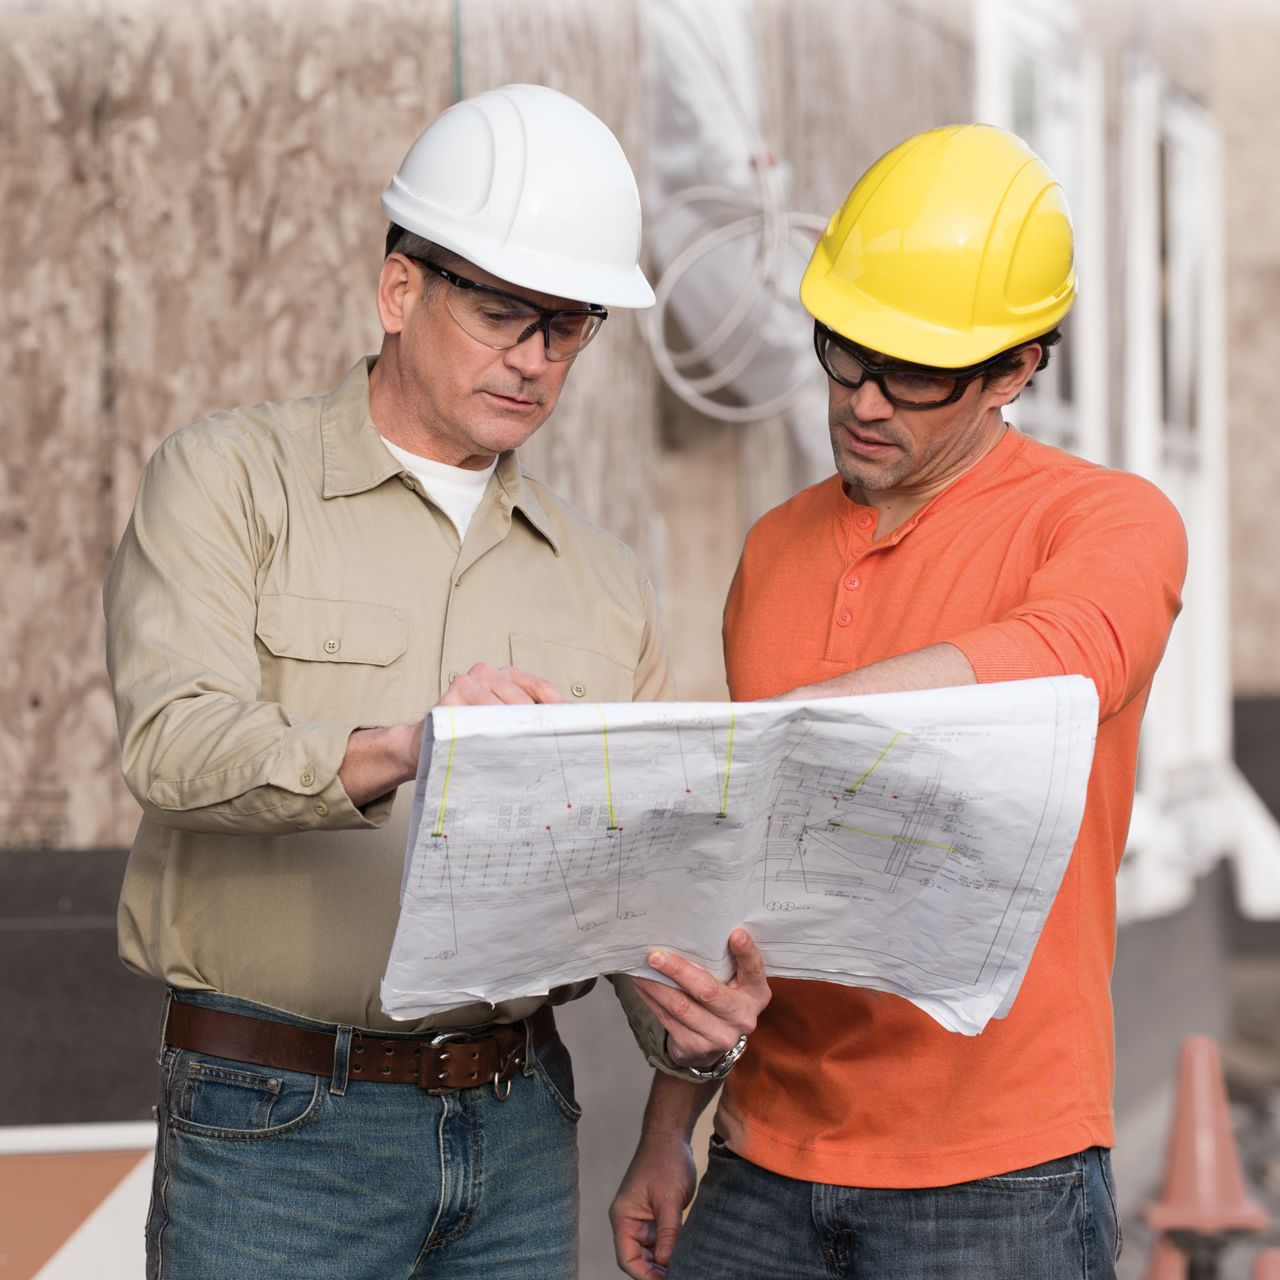 North_Zone_Hard_Hat_Workers_with_Blueprints